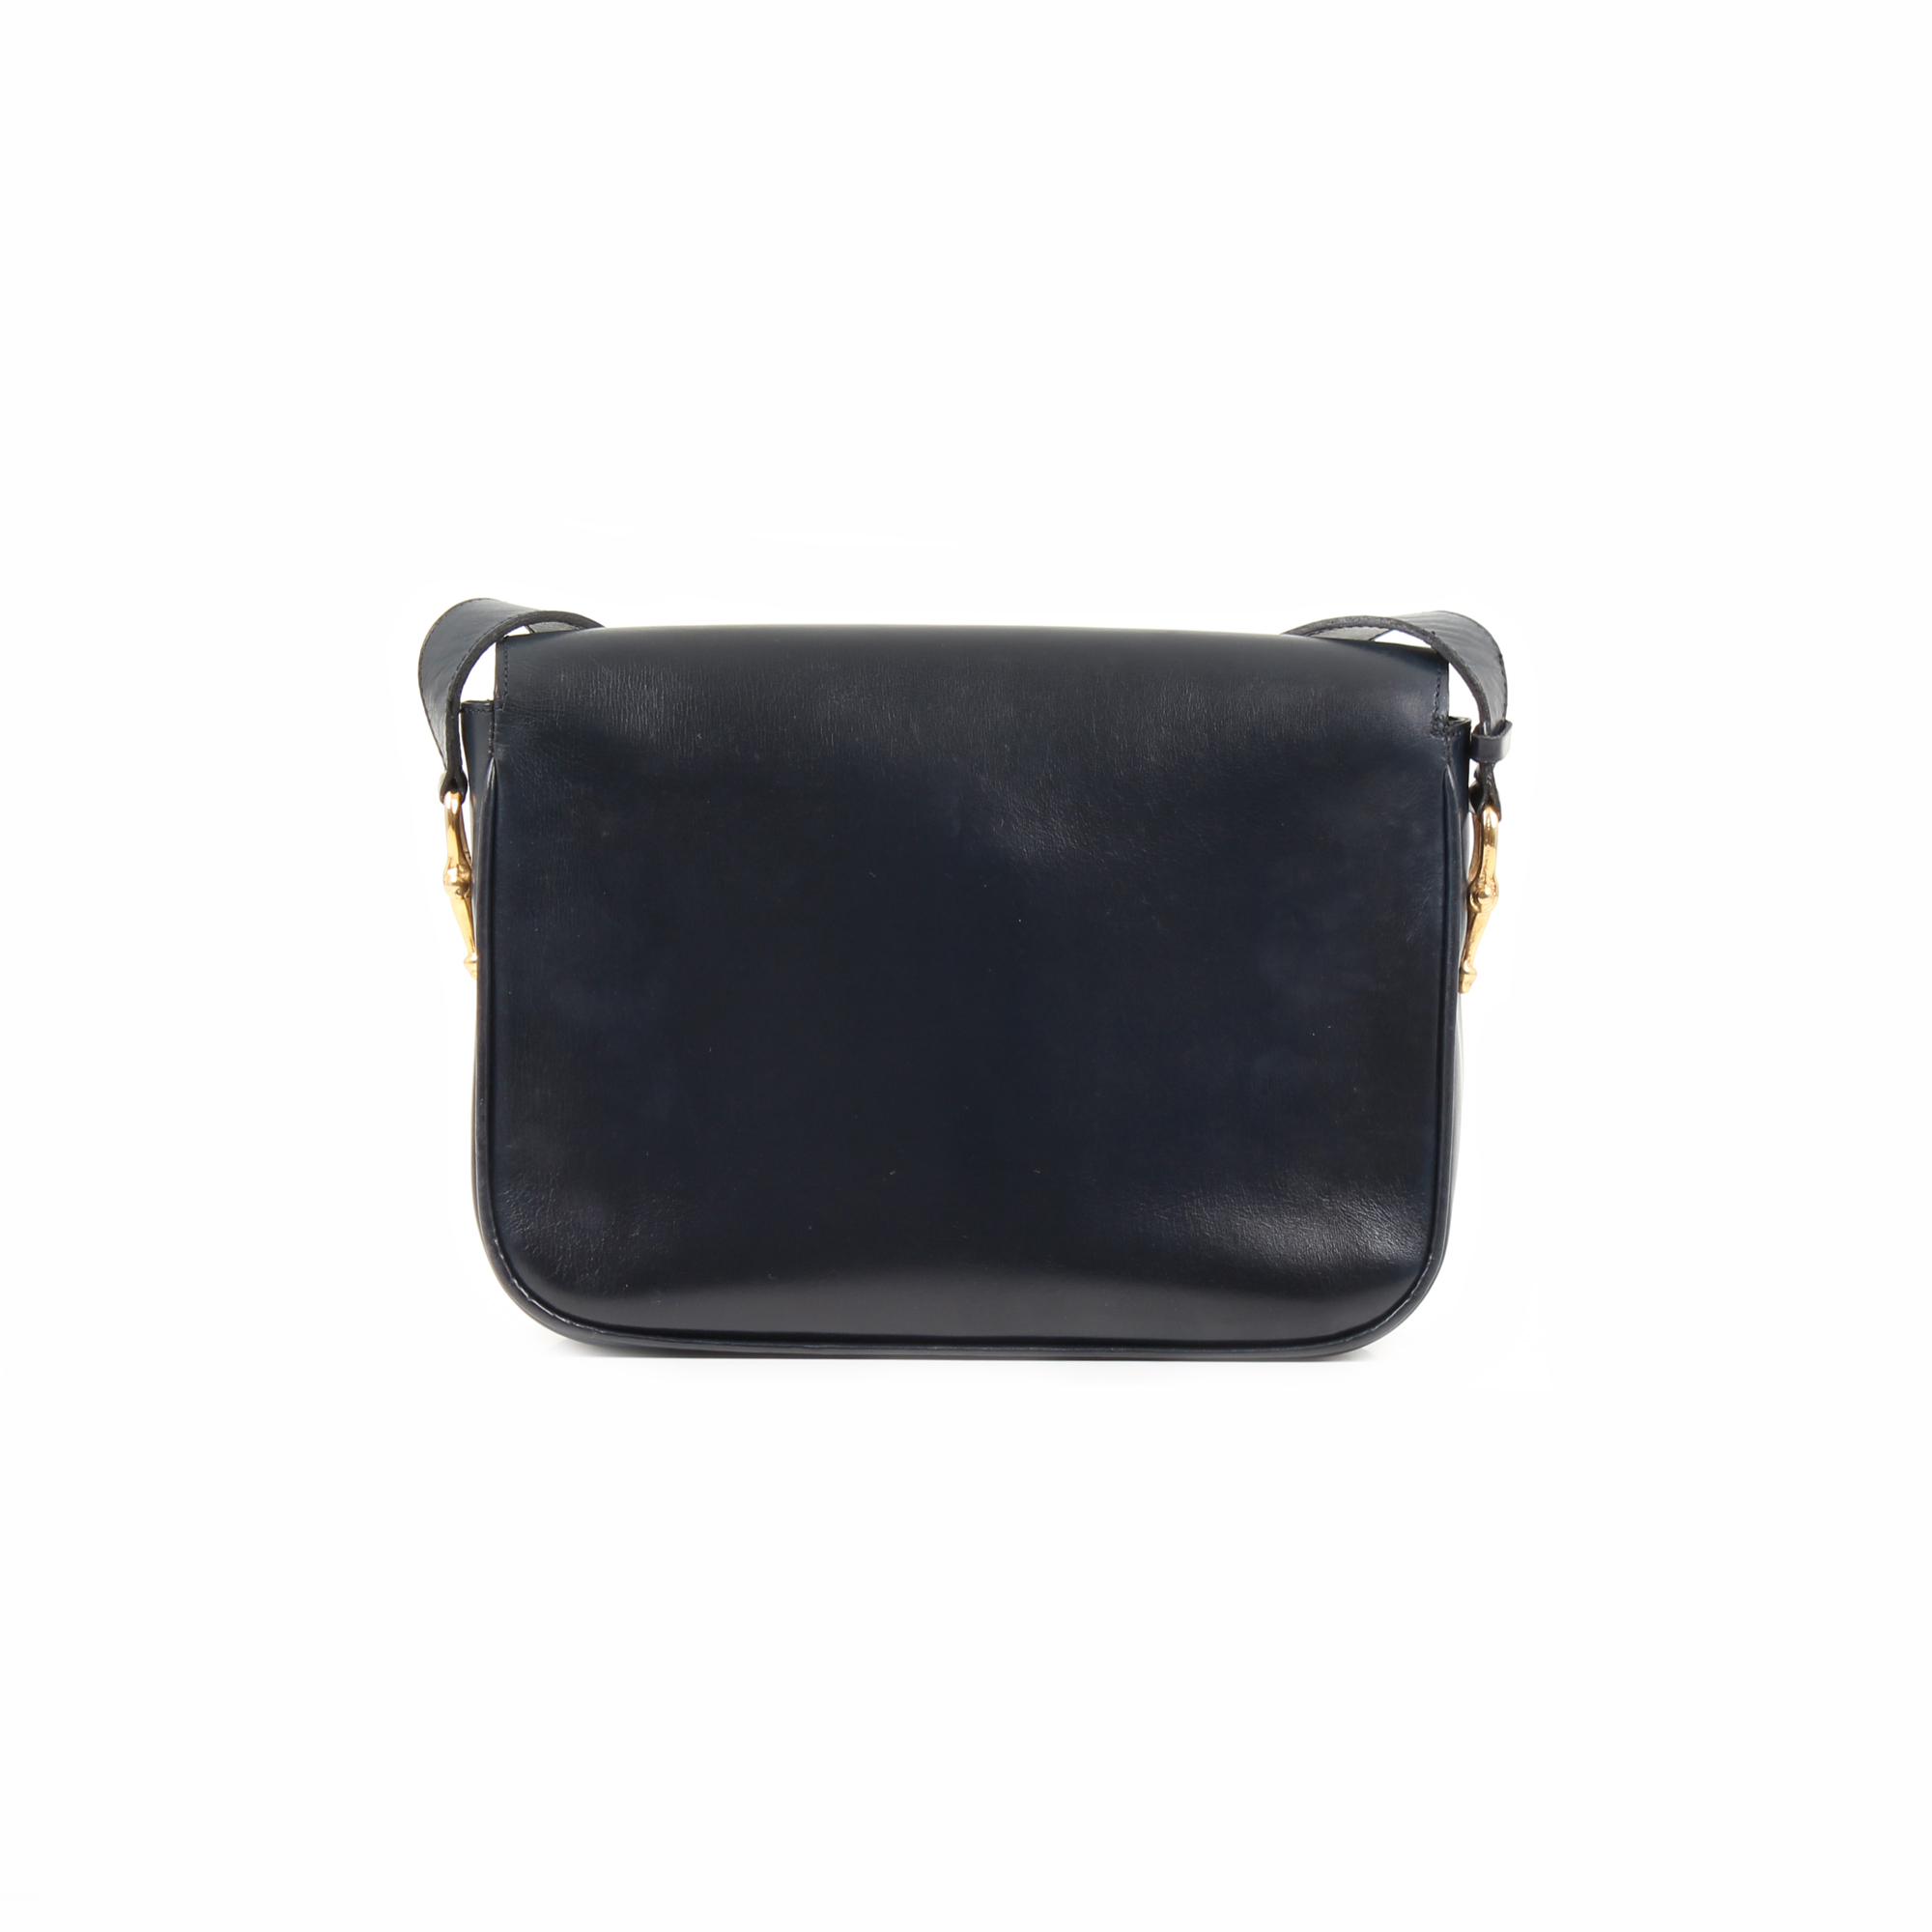 Back image of celine box vintage shoulder bag